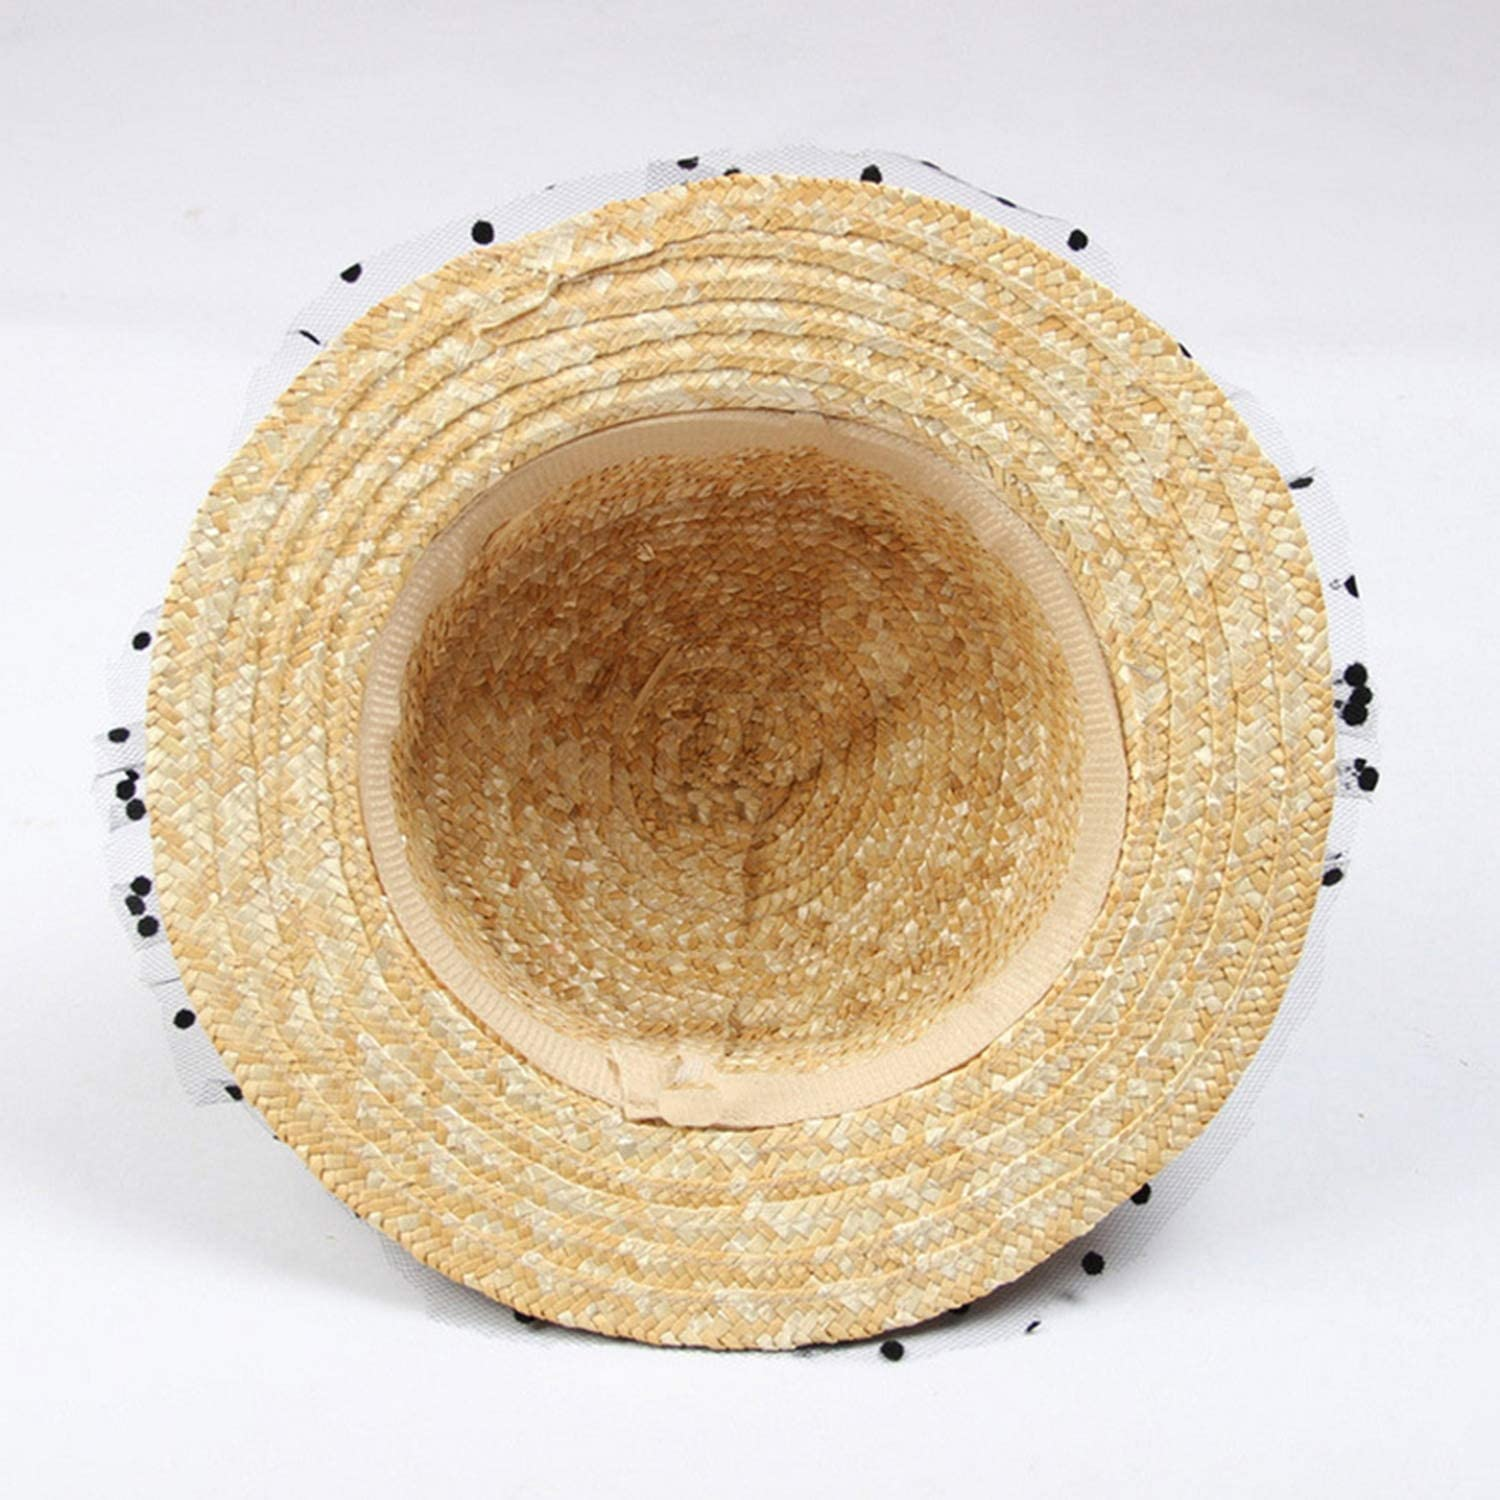 Lace Lady Sun caps Ribbon Bow Round Flat Top Straw Beach Hat Panama Hat Summer Hats for Women Straw Hats,White